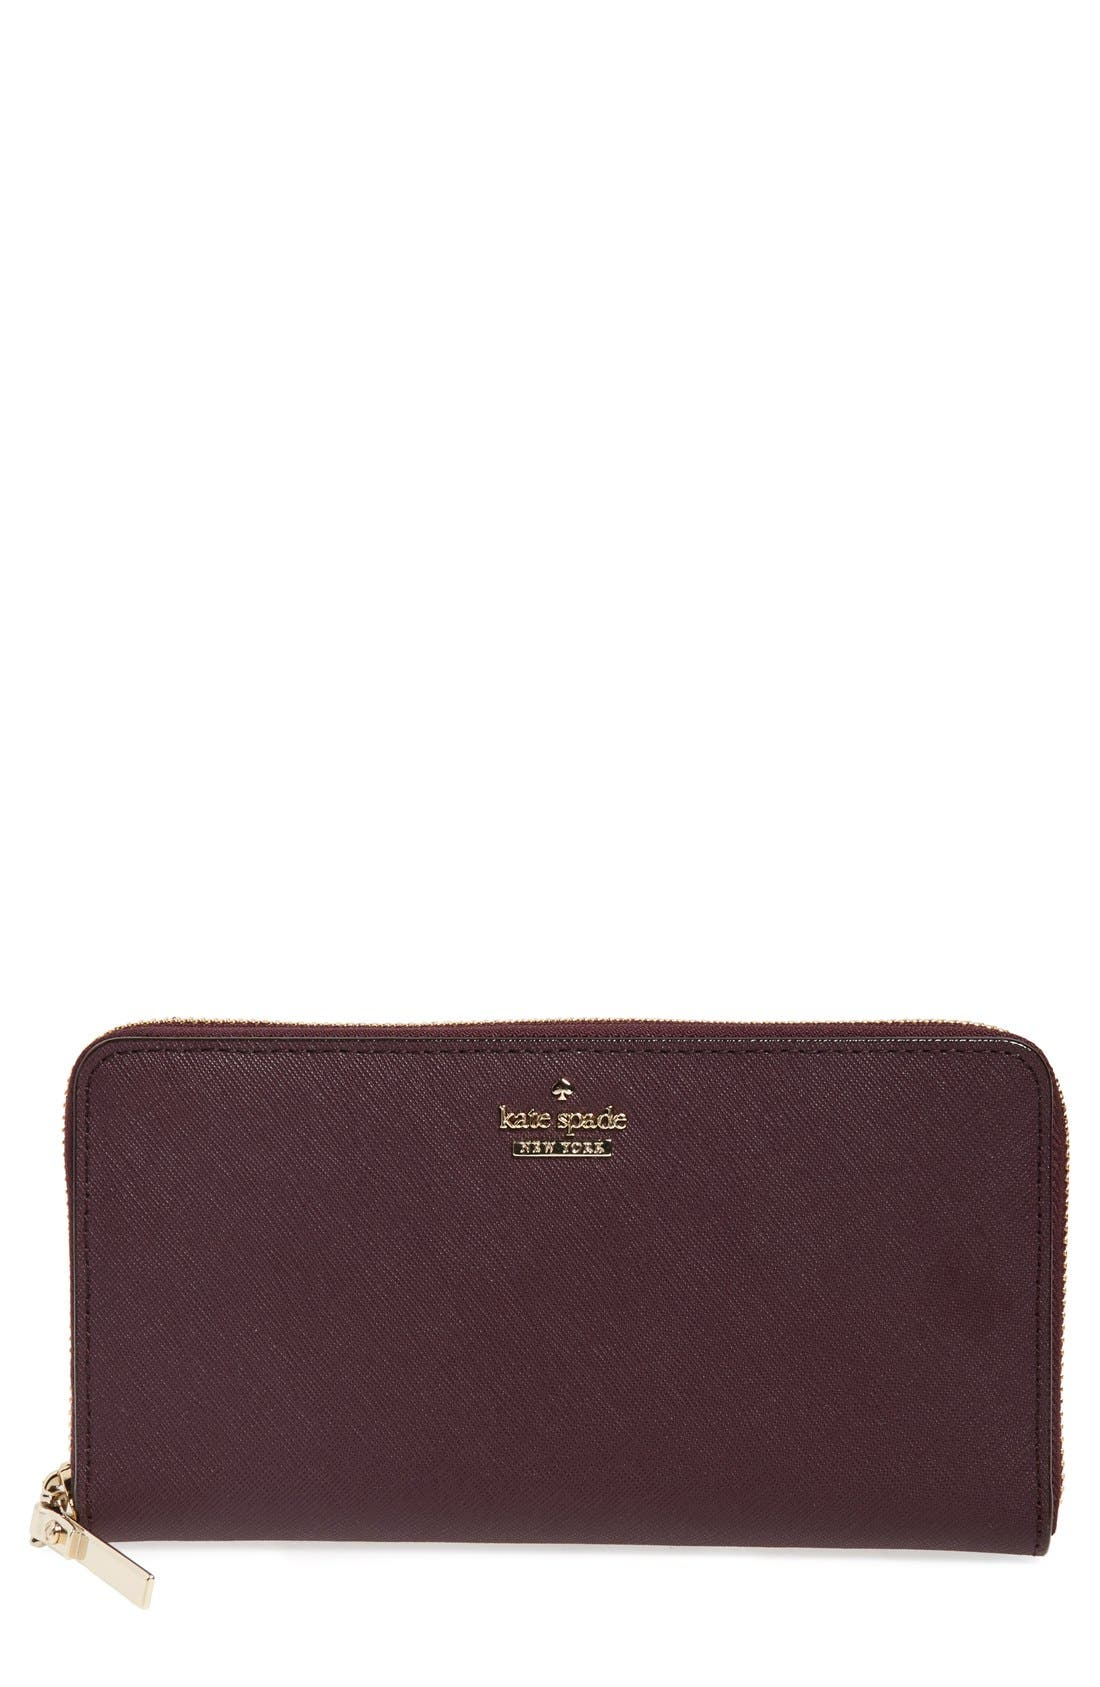 'cameron street - lacey' leather wallet,                             Main thumbnail 12, color,